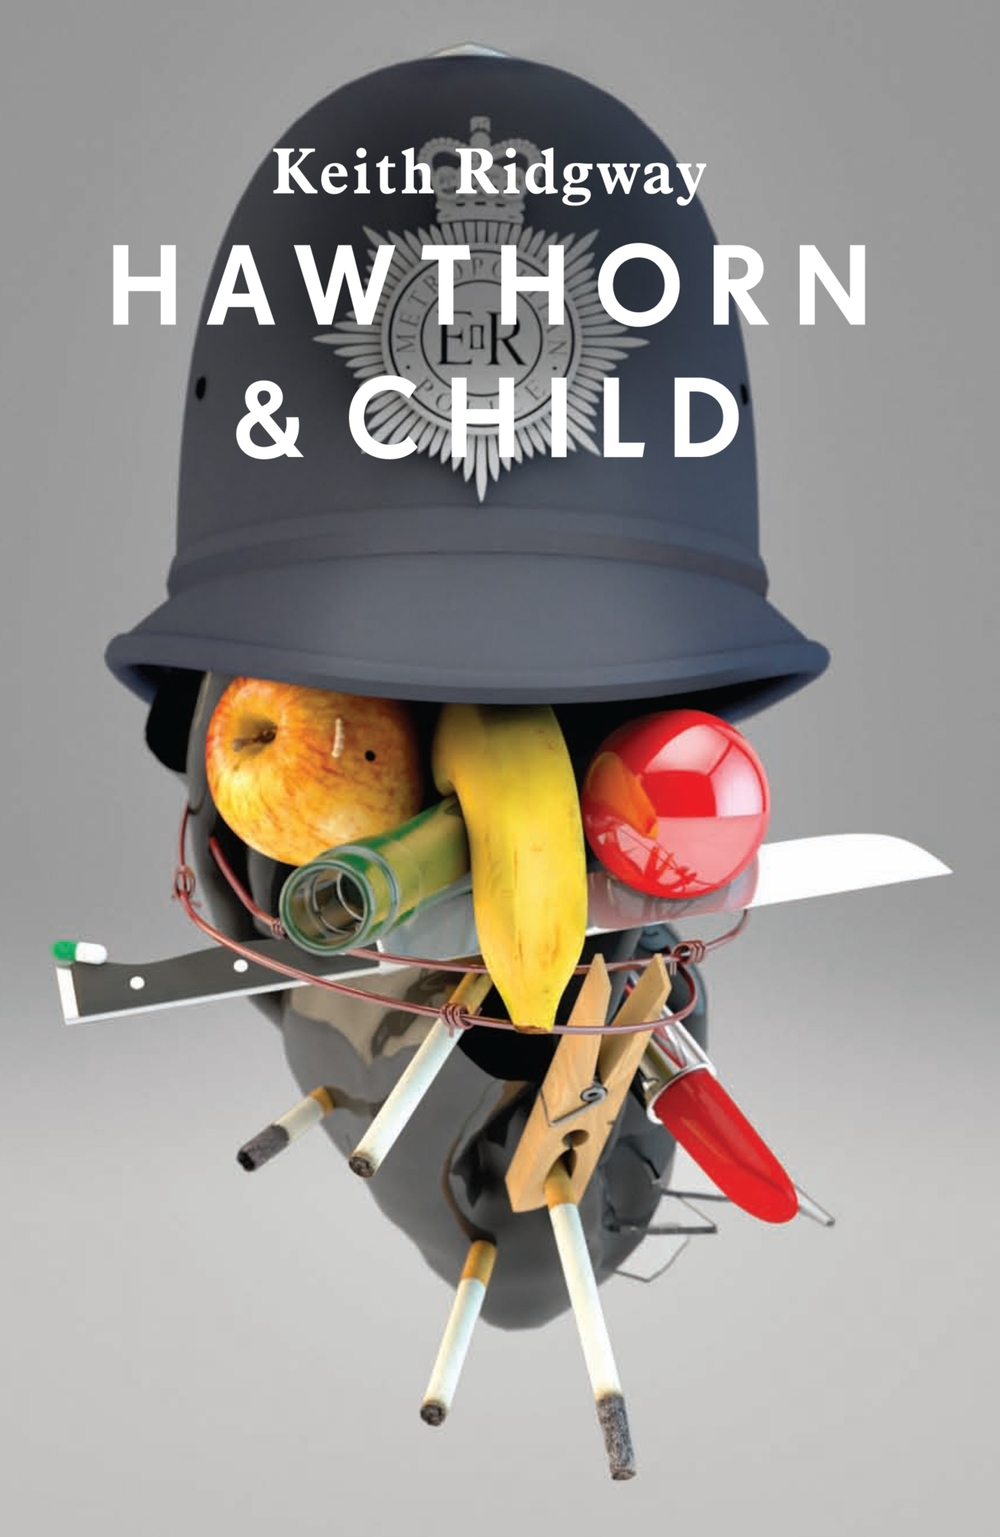 If Max Ernst was let loose on some 3D modelling software, he may have come up with something almost as good as this. Our new compellingly absurd cover by Tom Darracott for @kthrdgwy's very British novel, Hawthorn and Child.